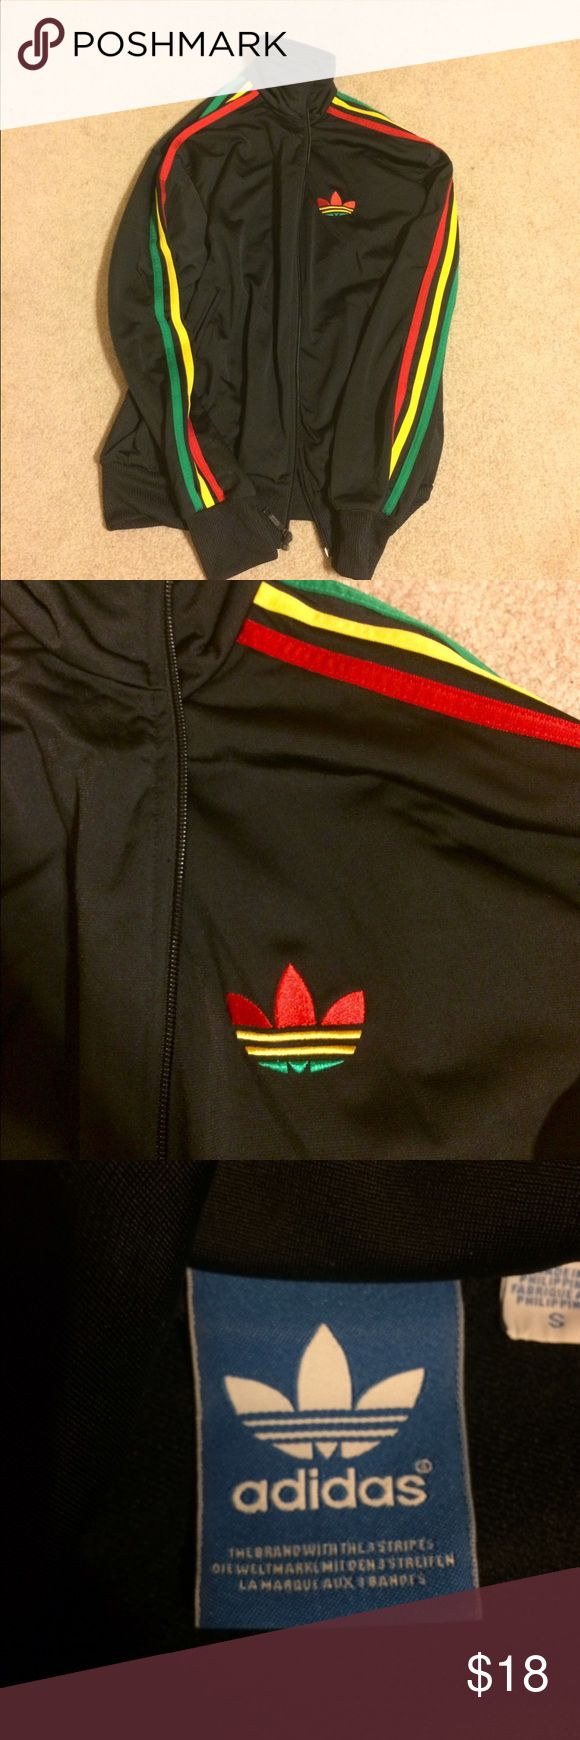 Adidas Rasta style zip up jacket Super cool jacket in great condition. Size small but fits like a medium/large Adidas Tops Sweatshirts & Hoodies